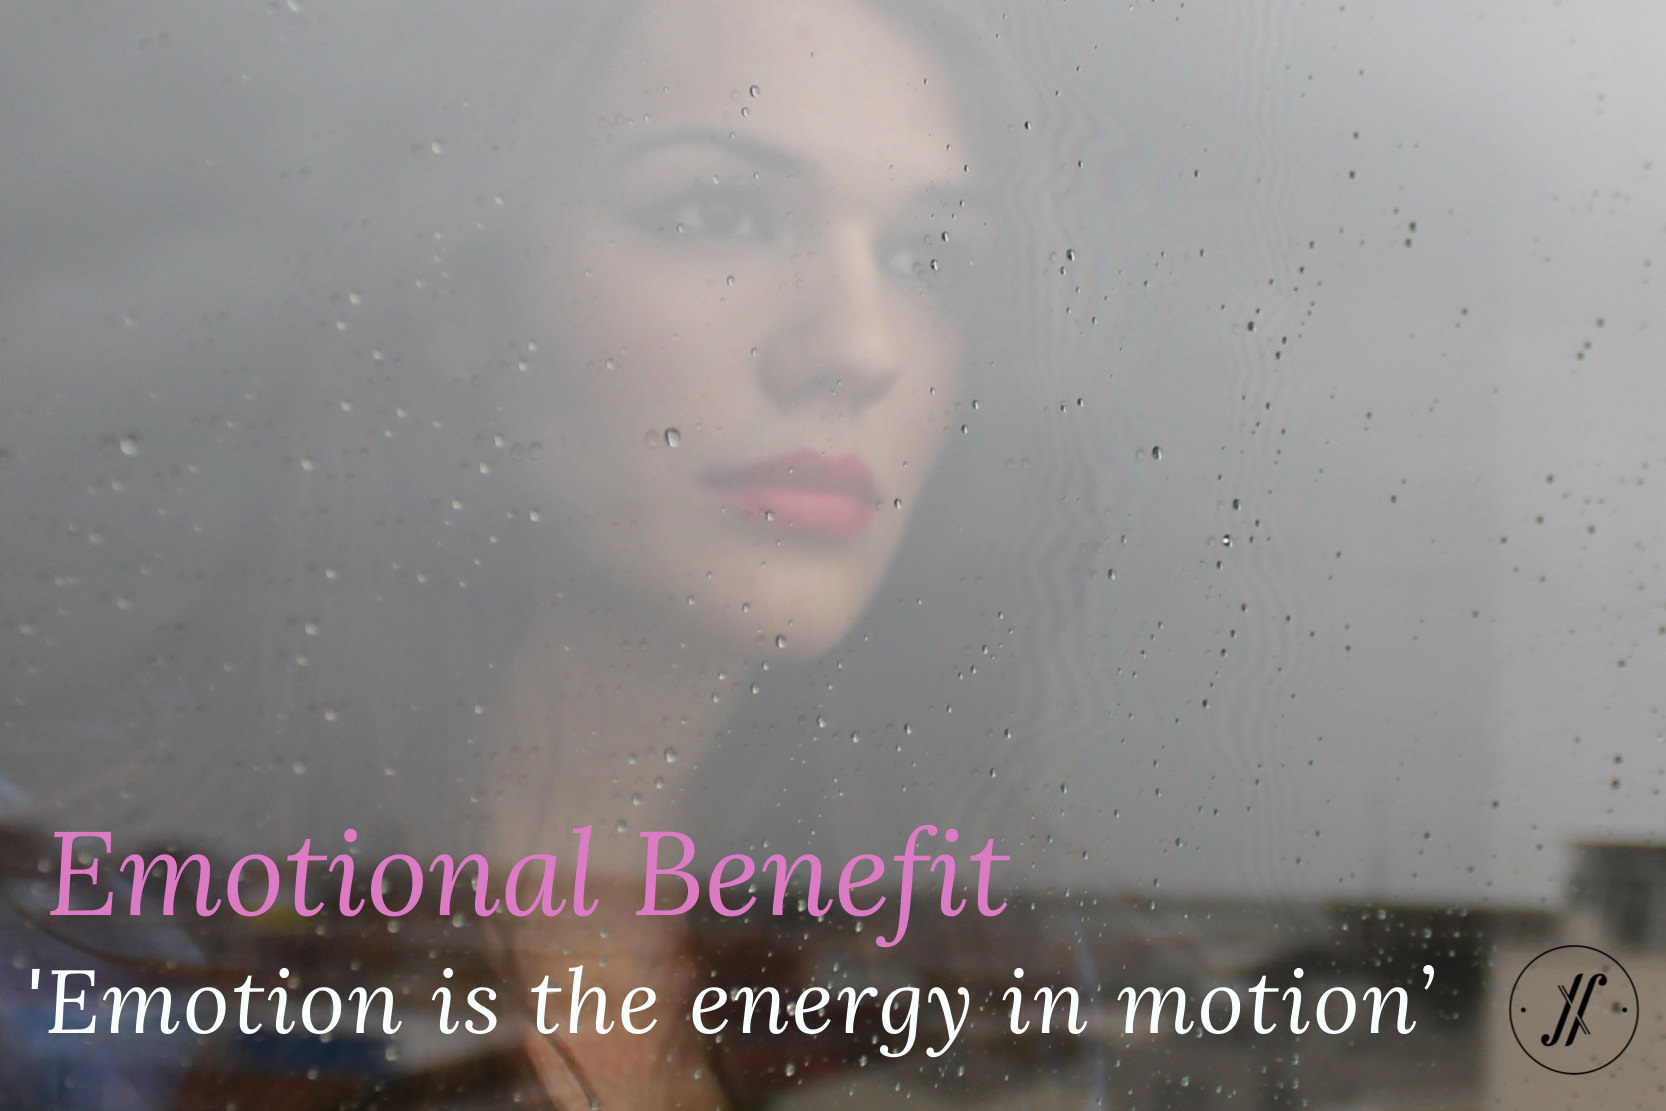 Emotional-Benefit-Emotion-is-the-energy-in-motion.jpg